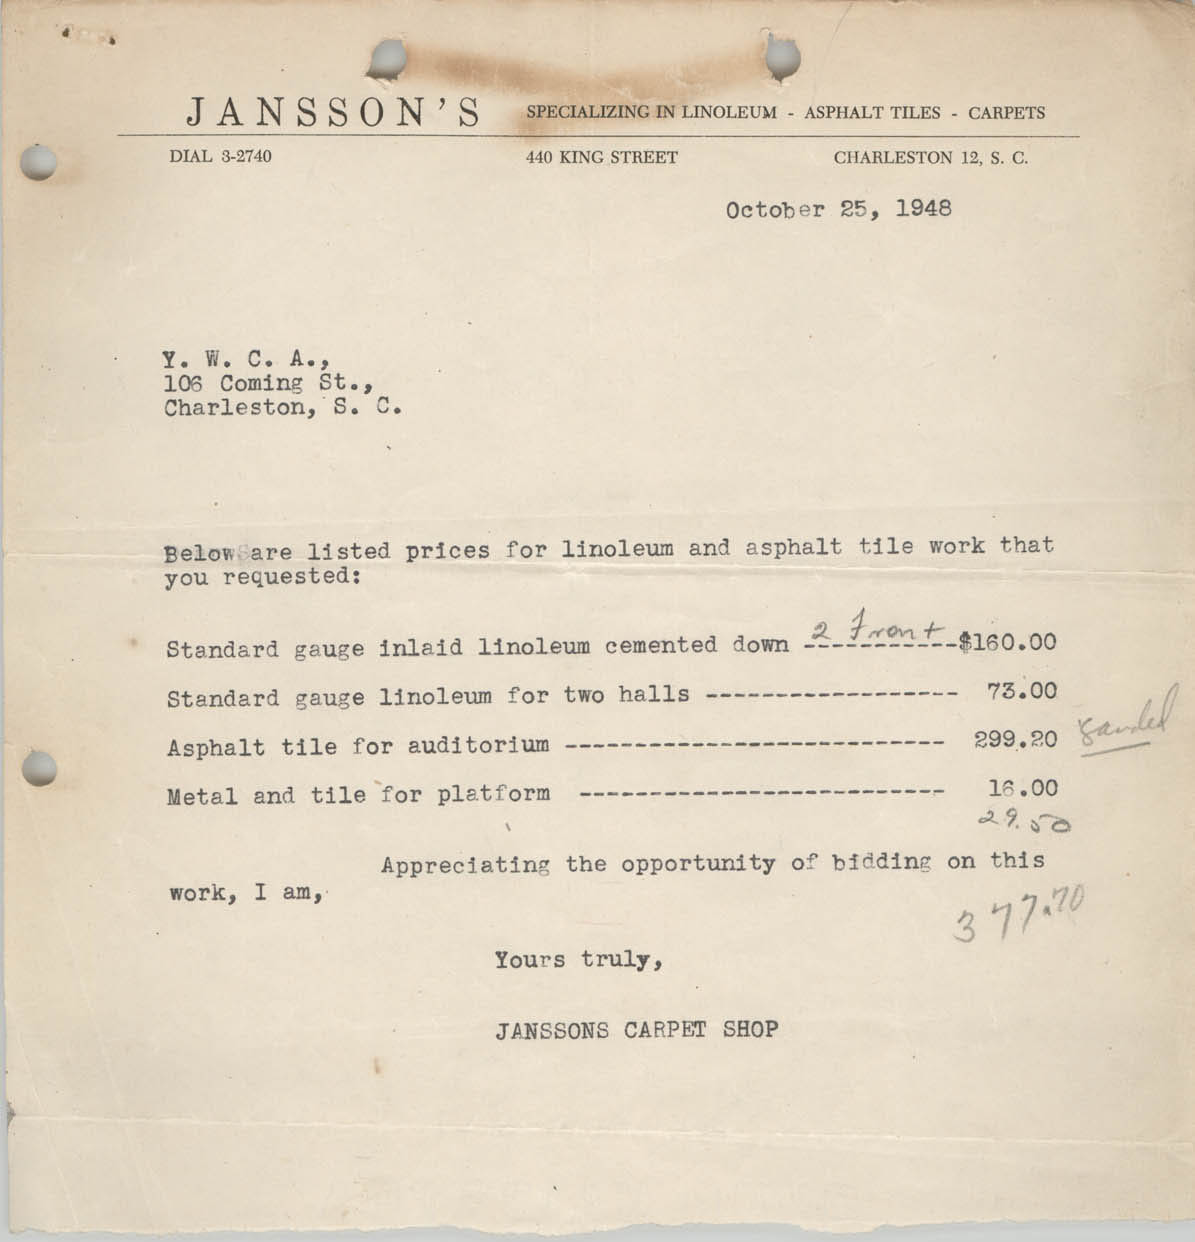 Letter from Janssons Carpet Shop Invoice to Coming Street Y.W.C.A., October 25, 1948